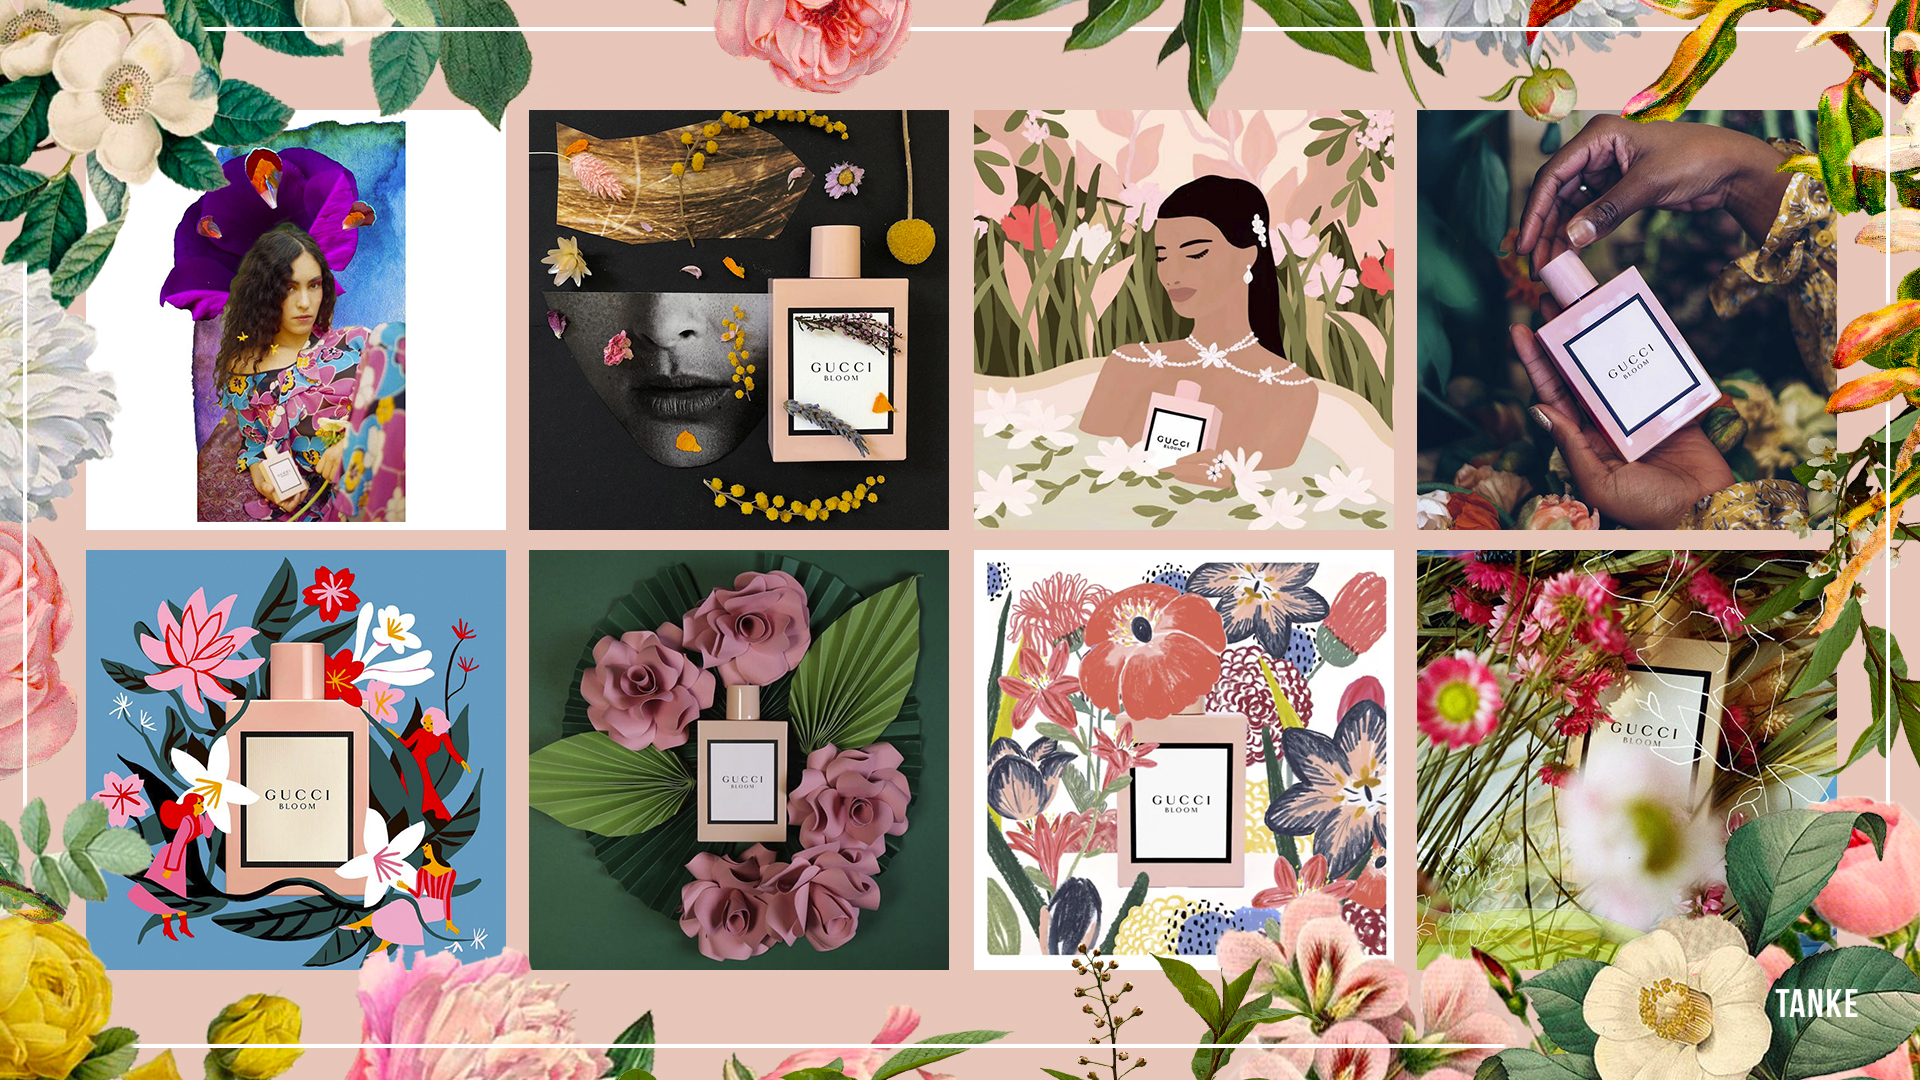 Tanke Pour Gucci Parfums Coty France Gucci Bloom Campagne